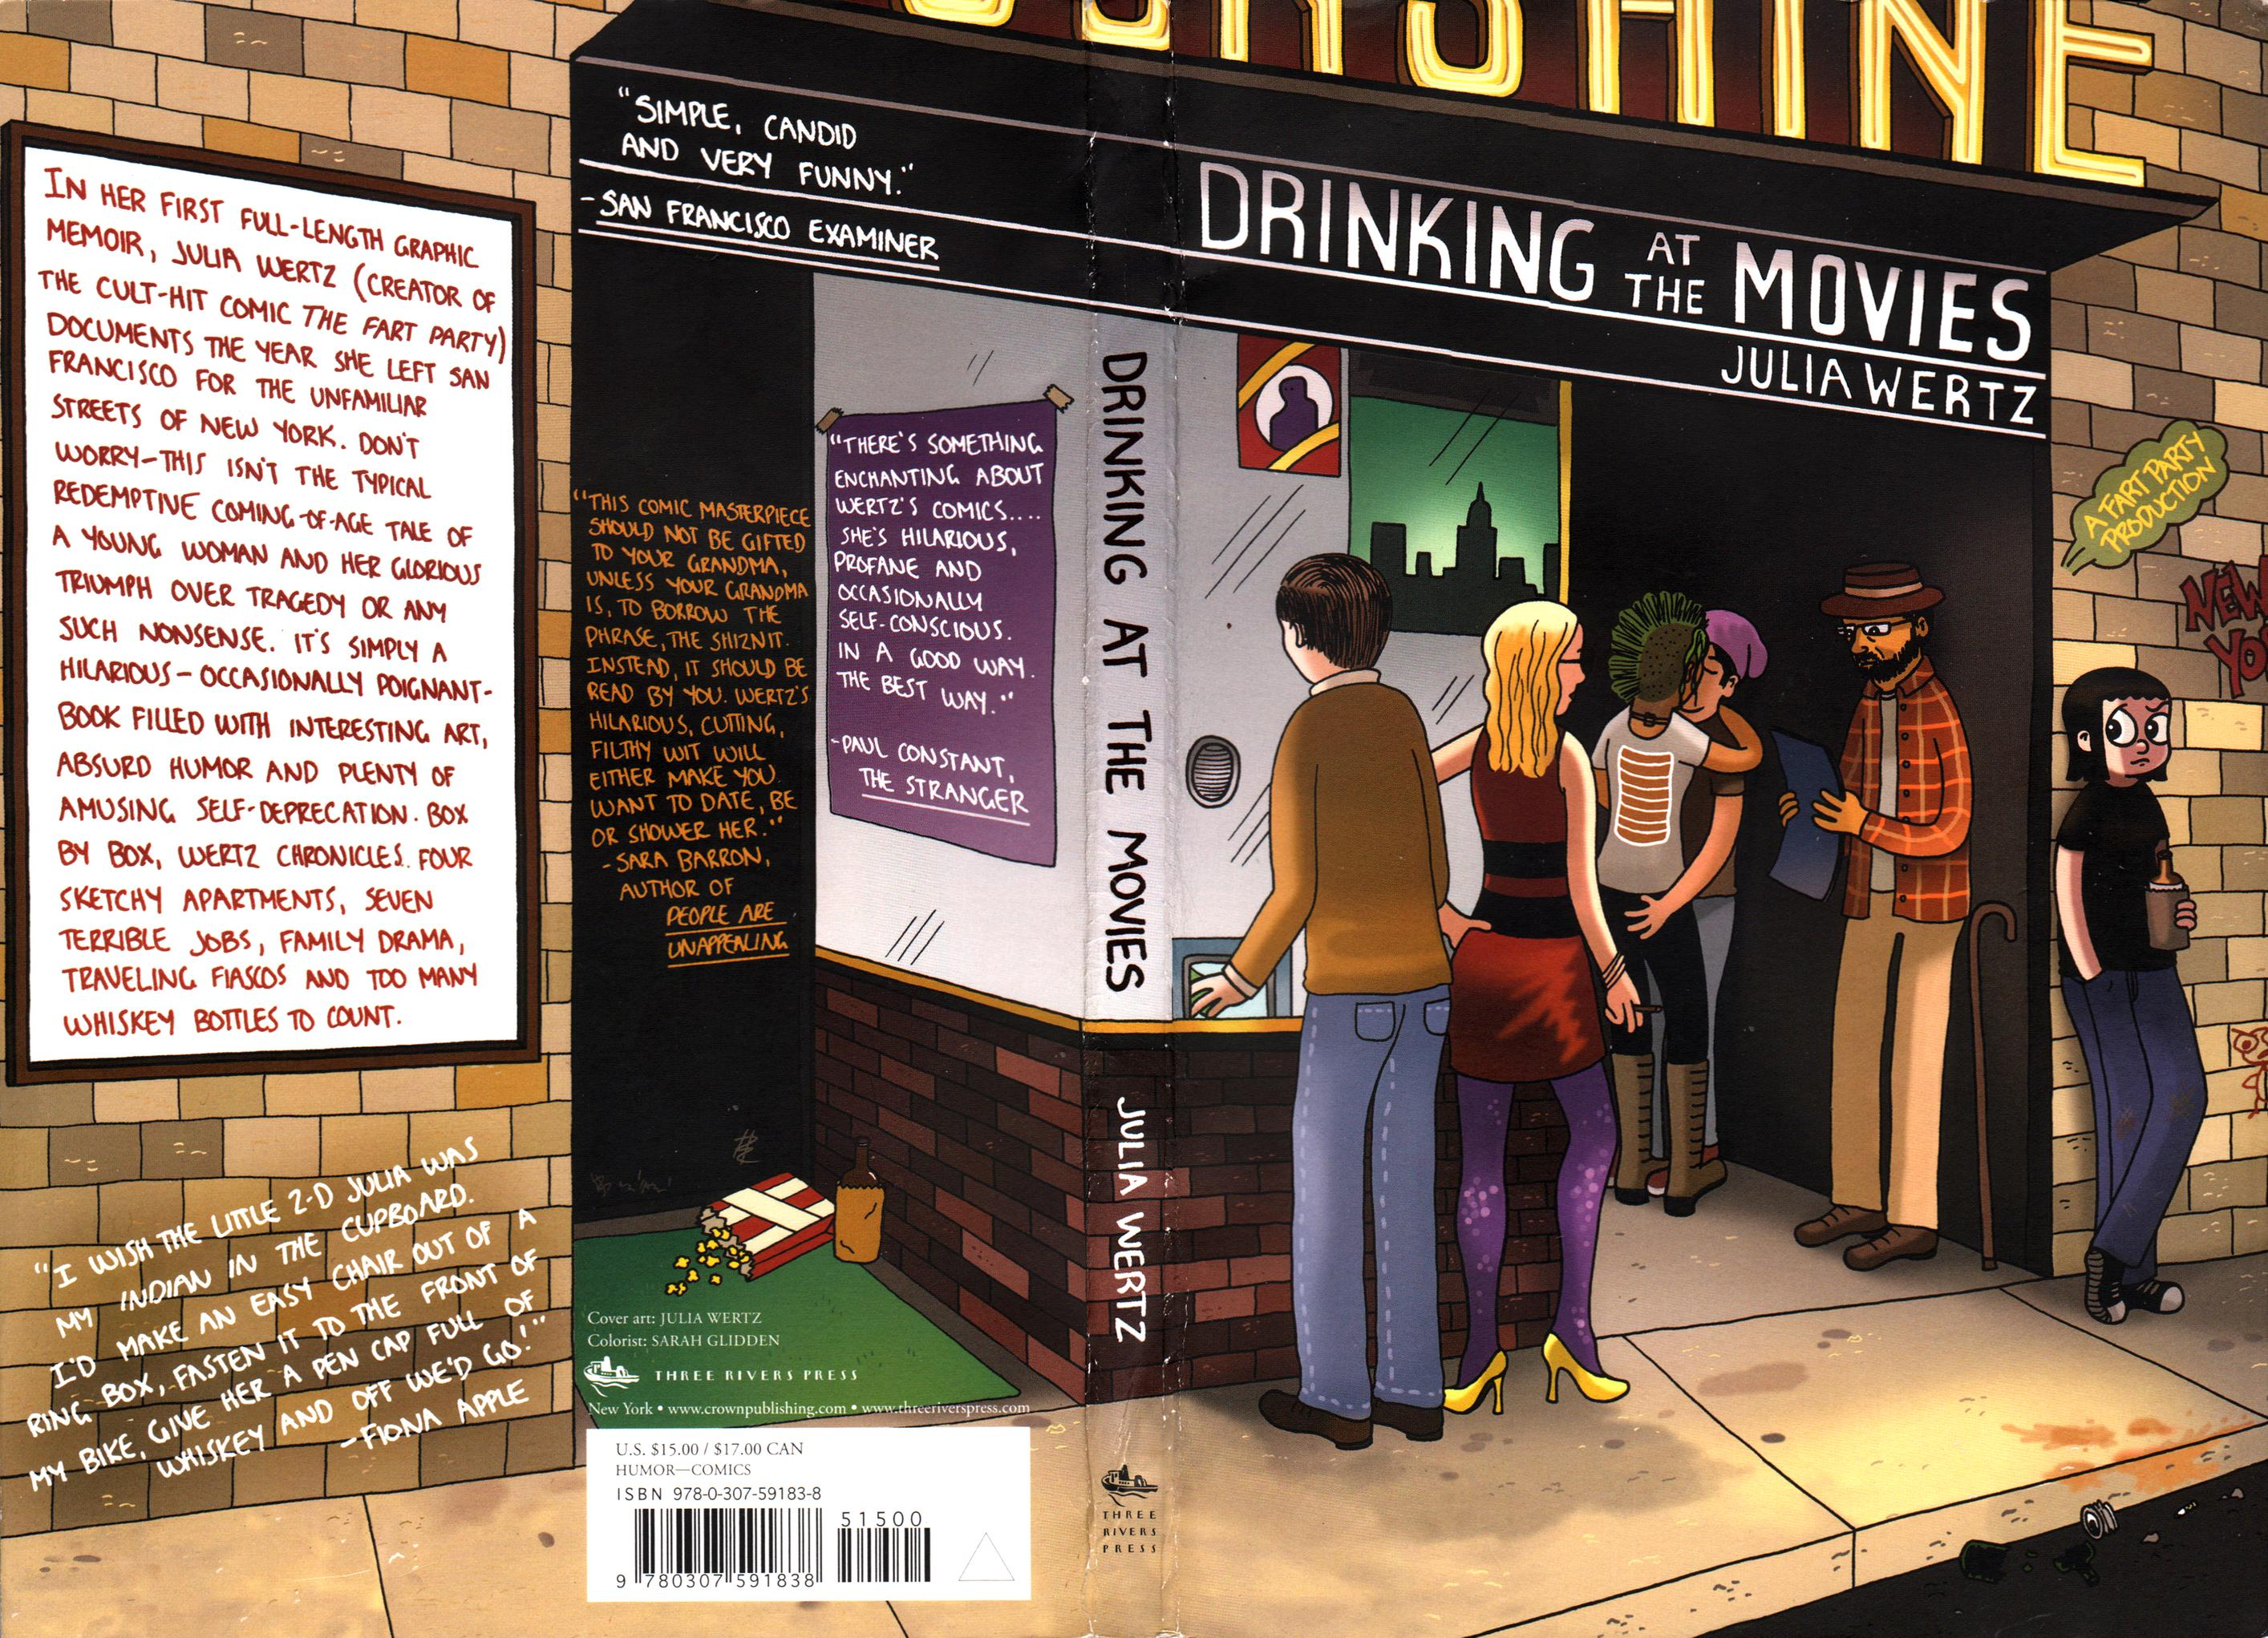 Read online Drinking at the Movies comic -  Issue # Full - 195